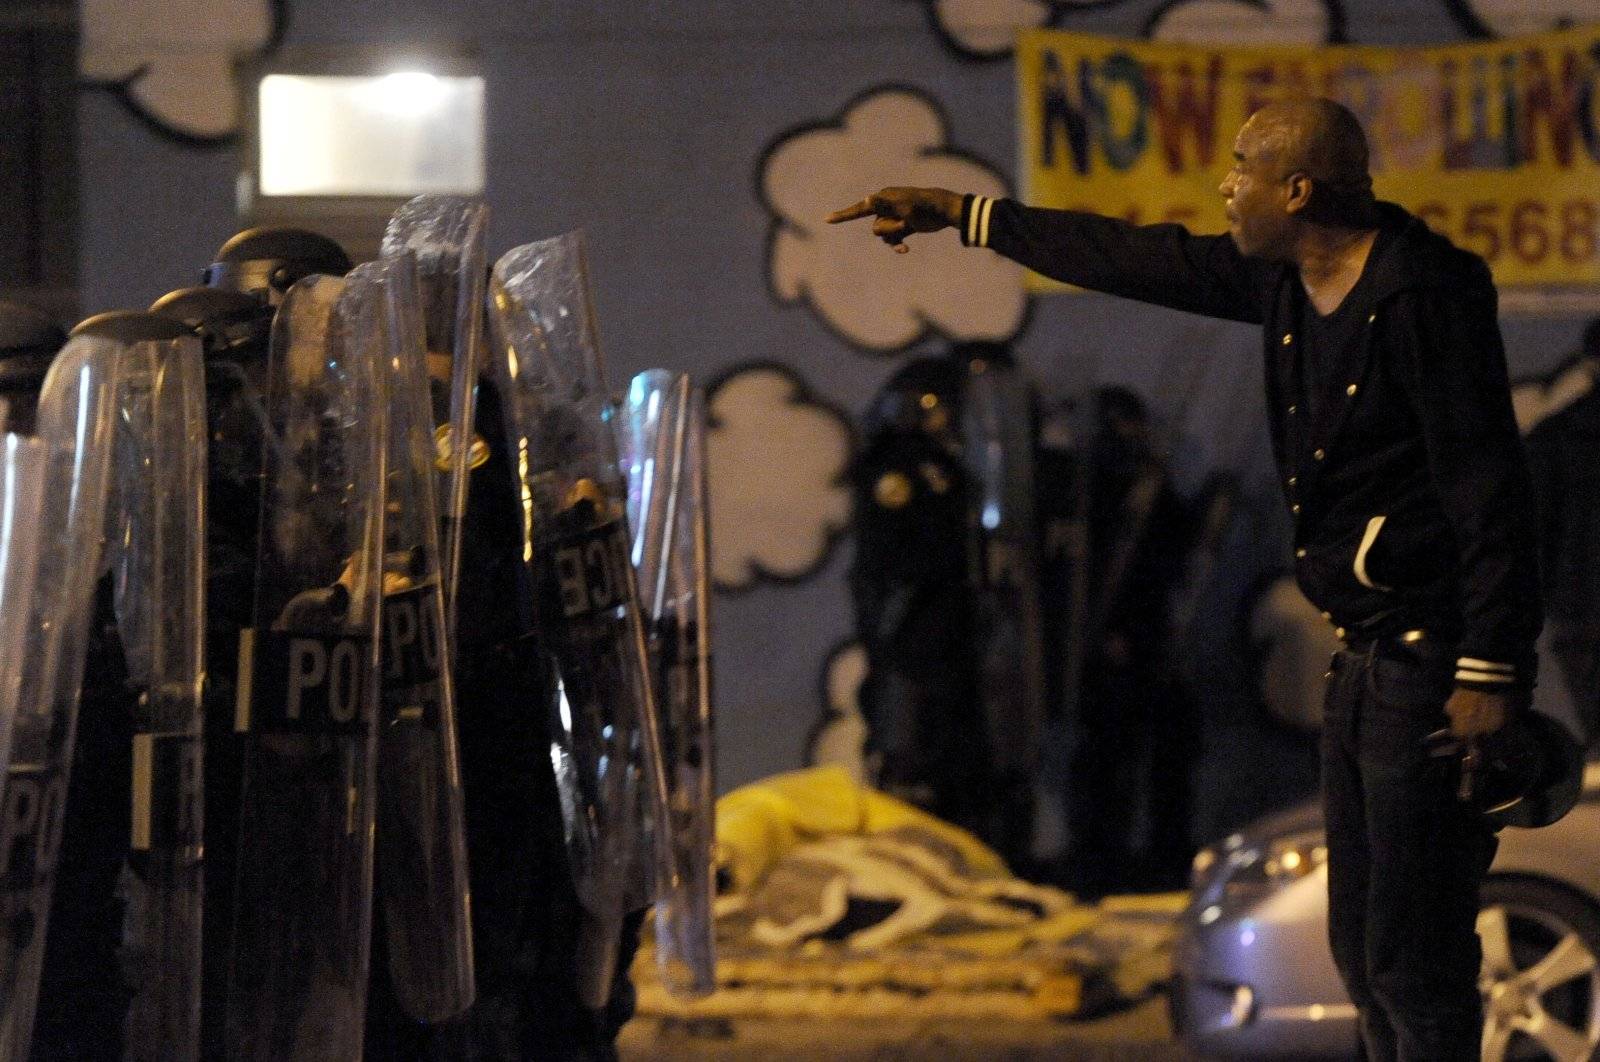 A protester points while facing police during a demonstration, in Philadelphia, U.S., Oct. 27, 2020. (AP Photo)